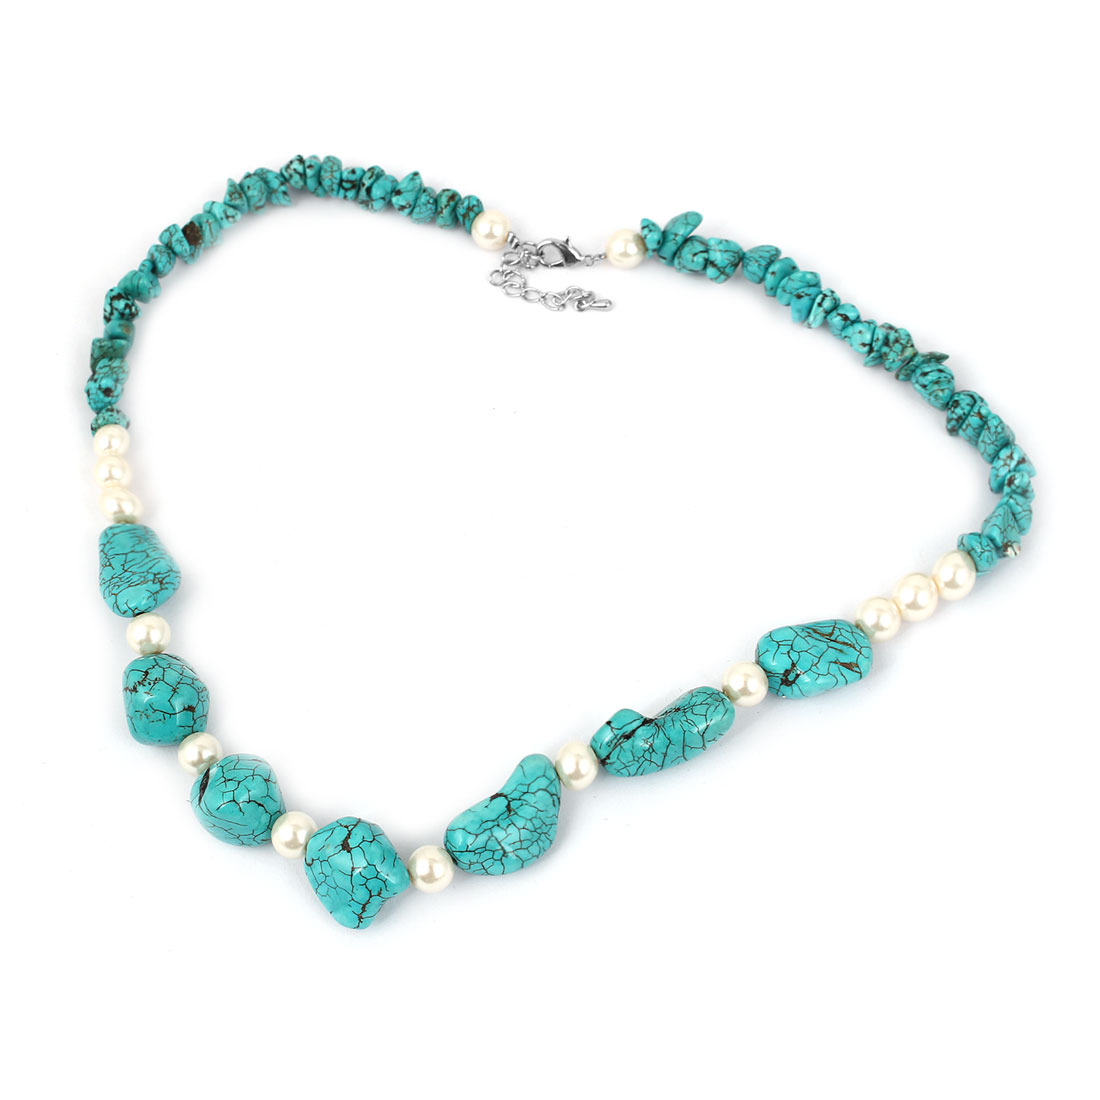 Lady Fashion Jewelry Lobster Clasp Faux Imitation Pearl Beads Turquoise Necklace Blue